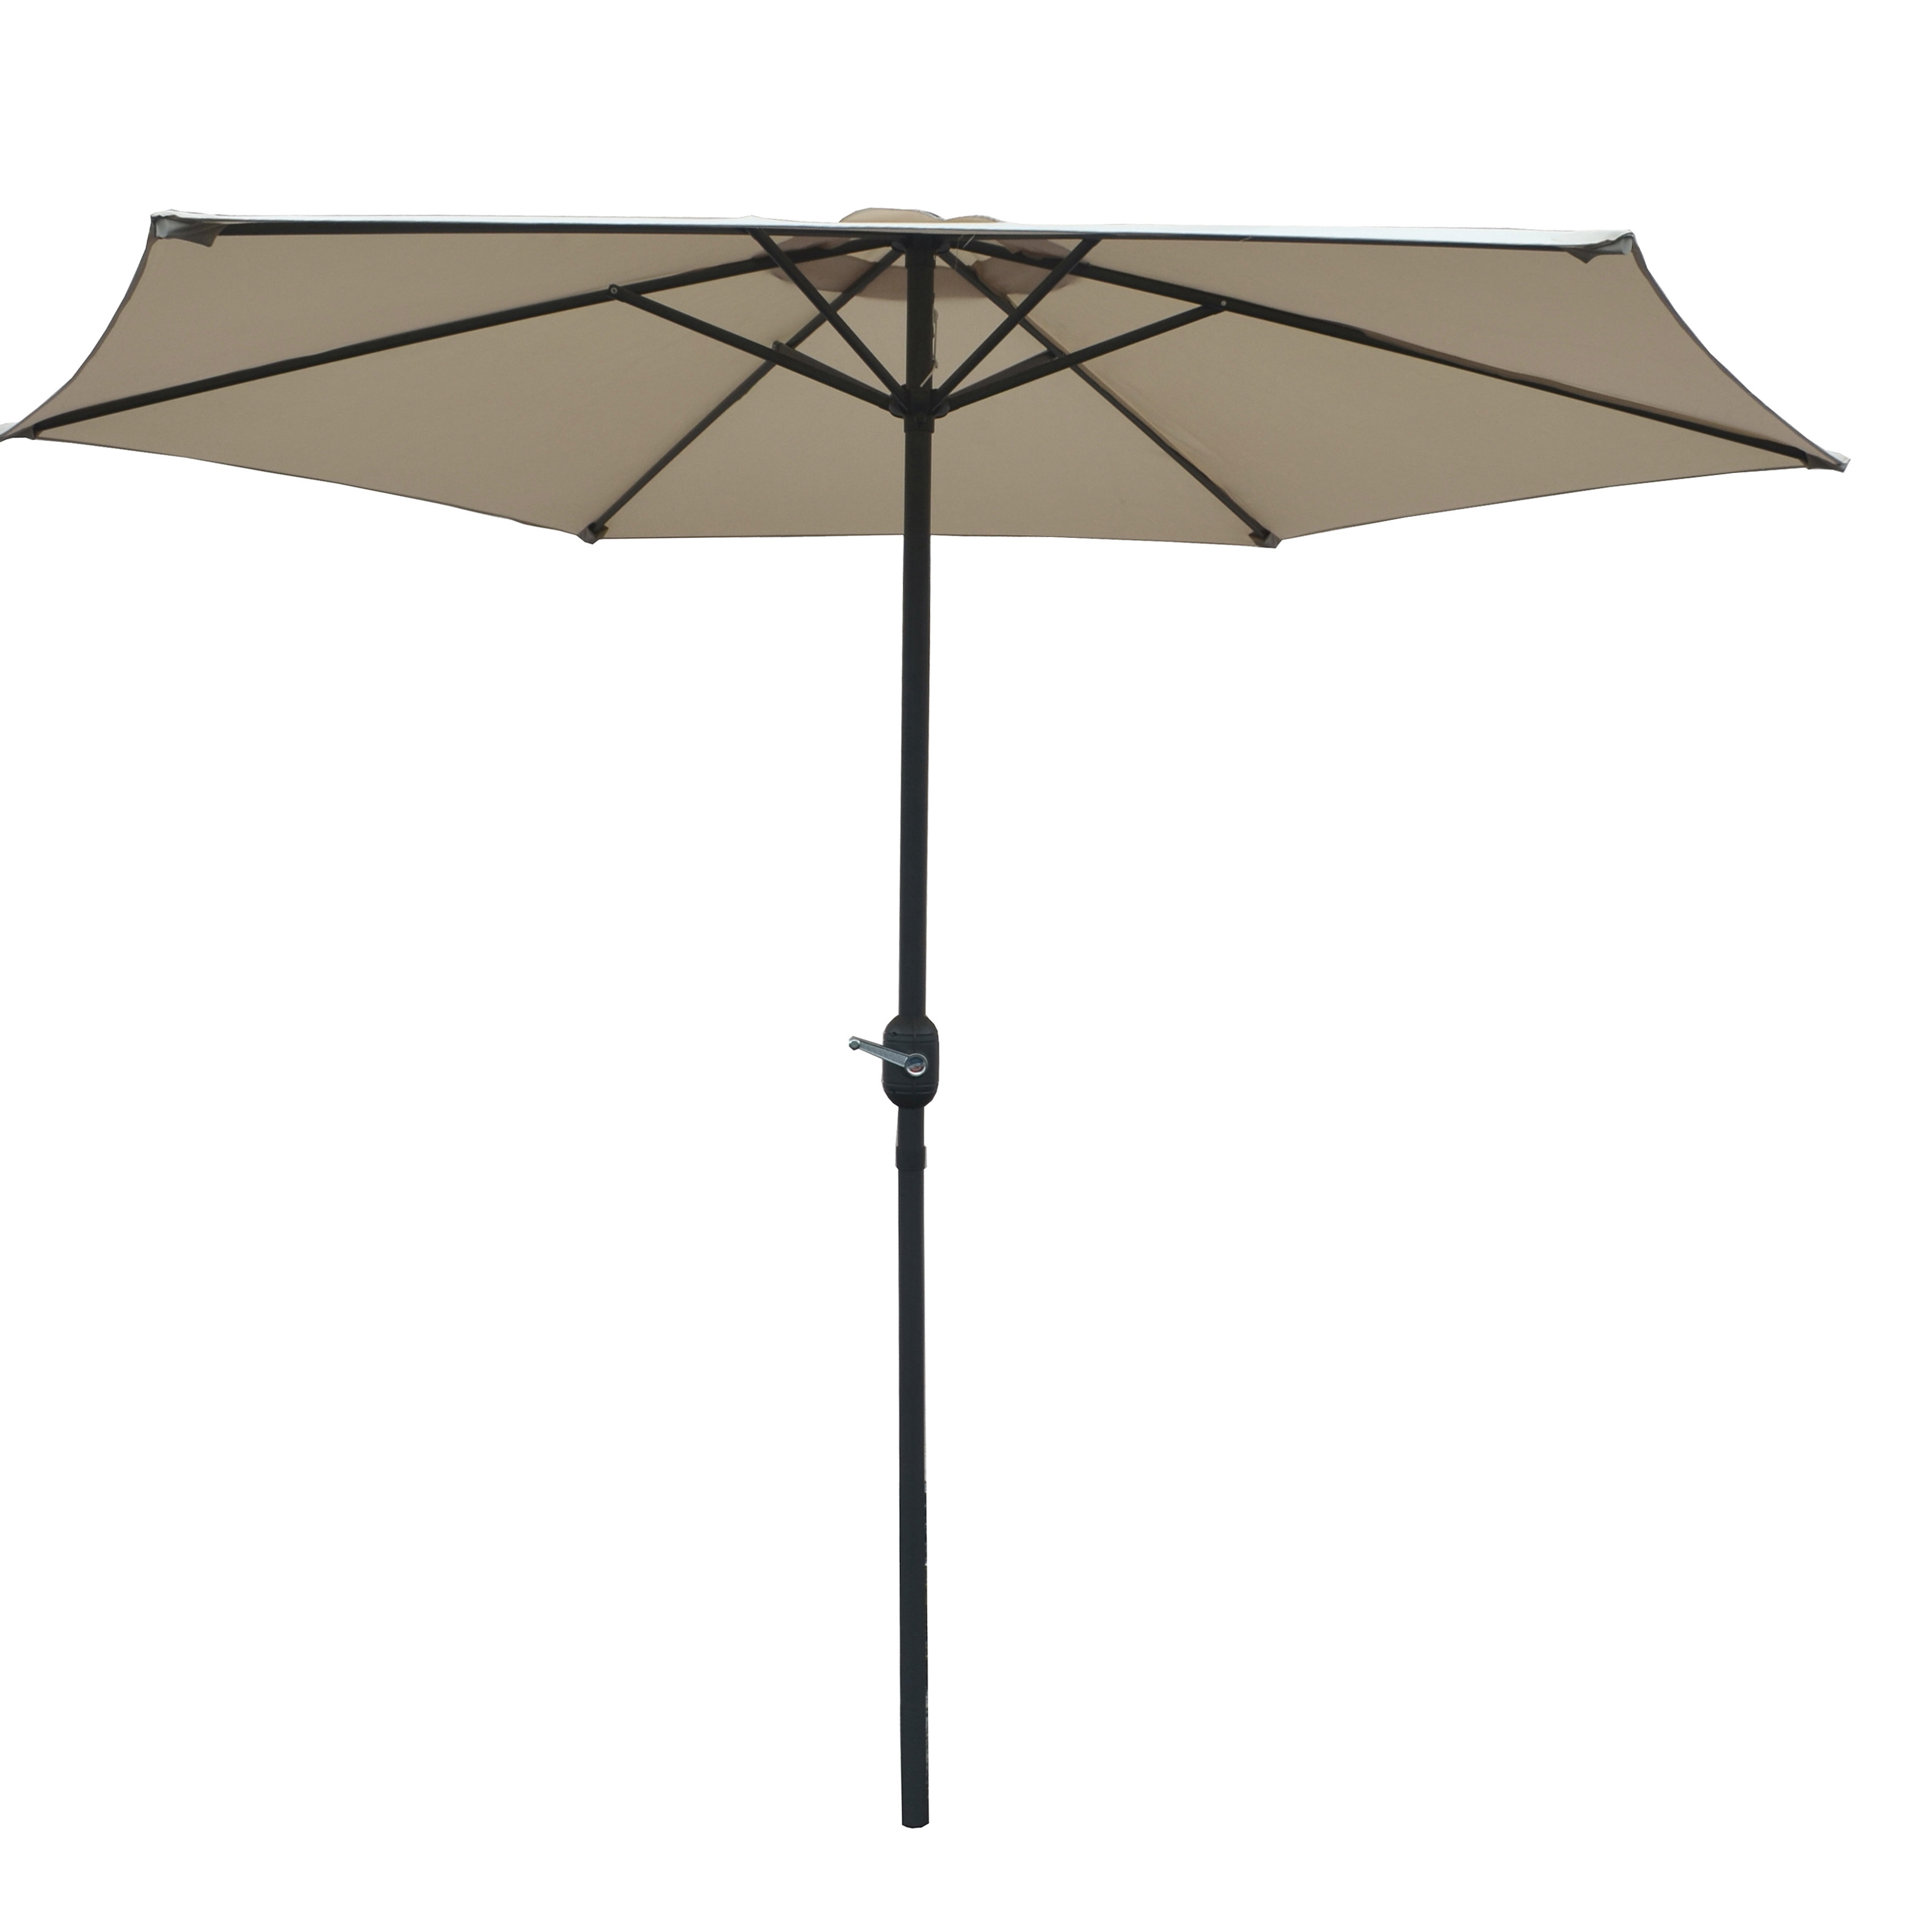 Allport Market Umbrellas Pertaining To Most Current Trudeau 7.8' Market Umbrella (Gallery 17 of 20)